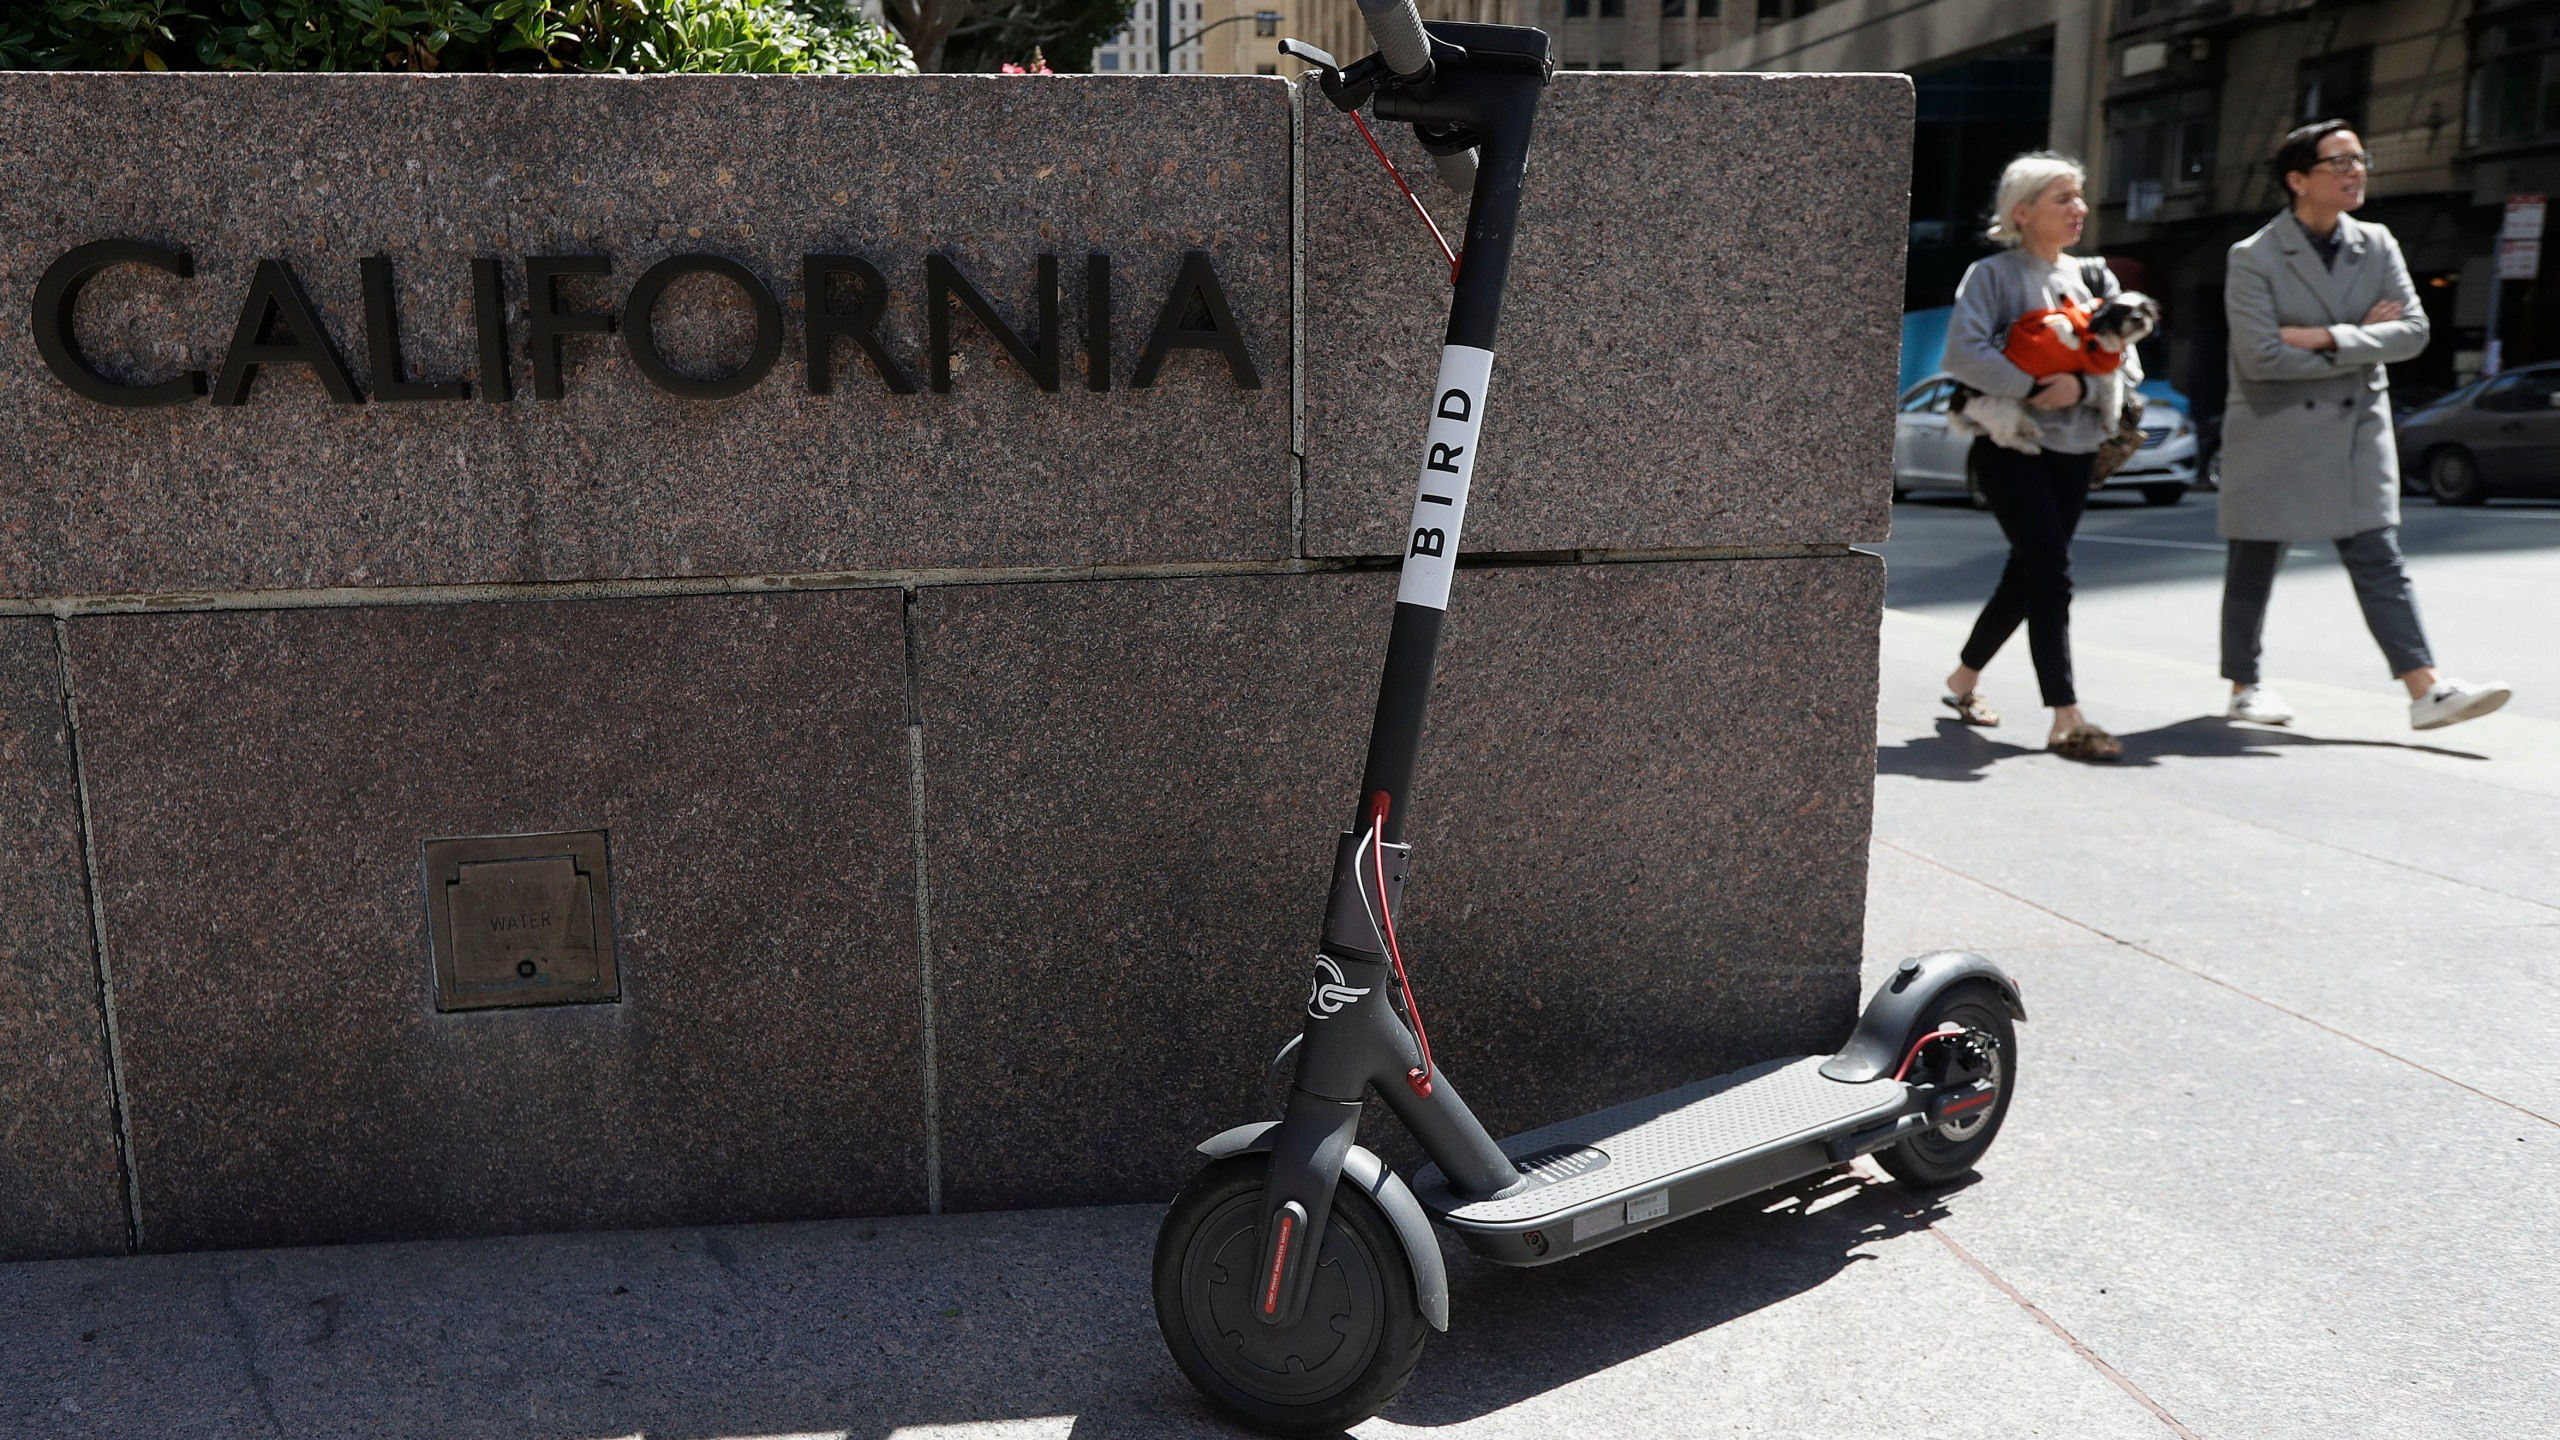 Dockless_Scooters_San_Francisco_97444-159532.jpg57535137